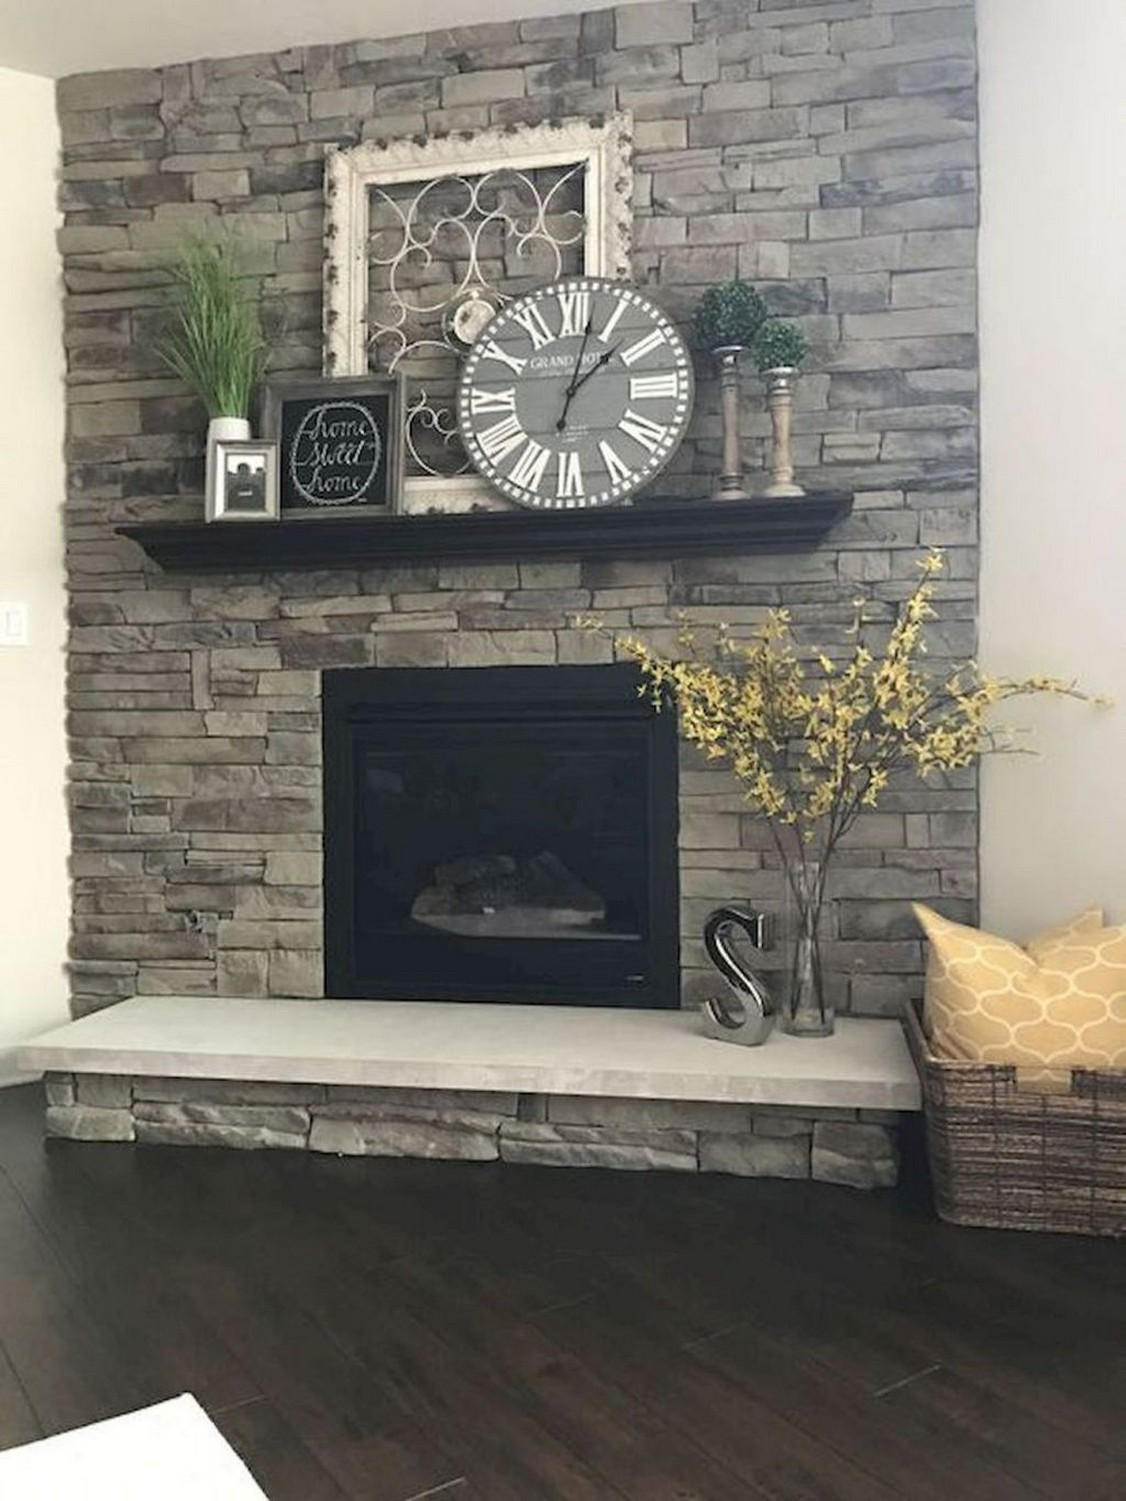 76 Stone Fireplaces The Hearth Is The Heart of The Home 65